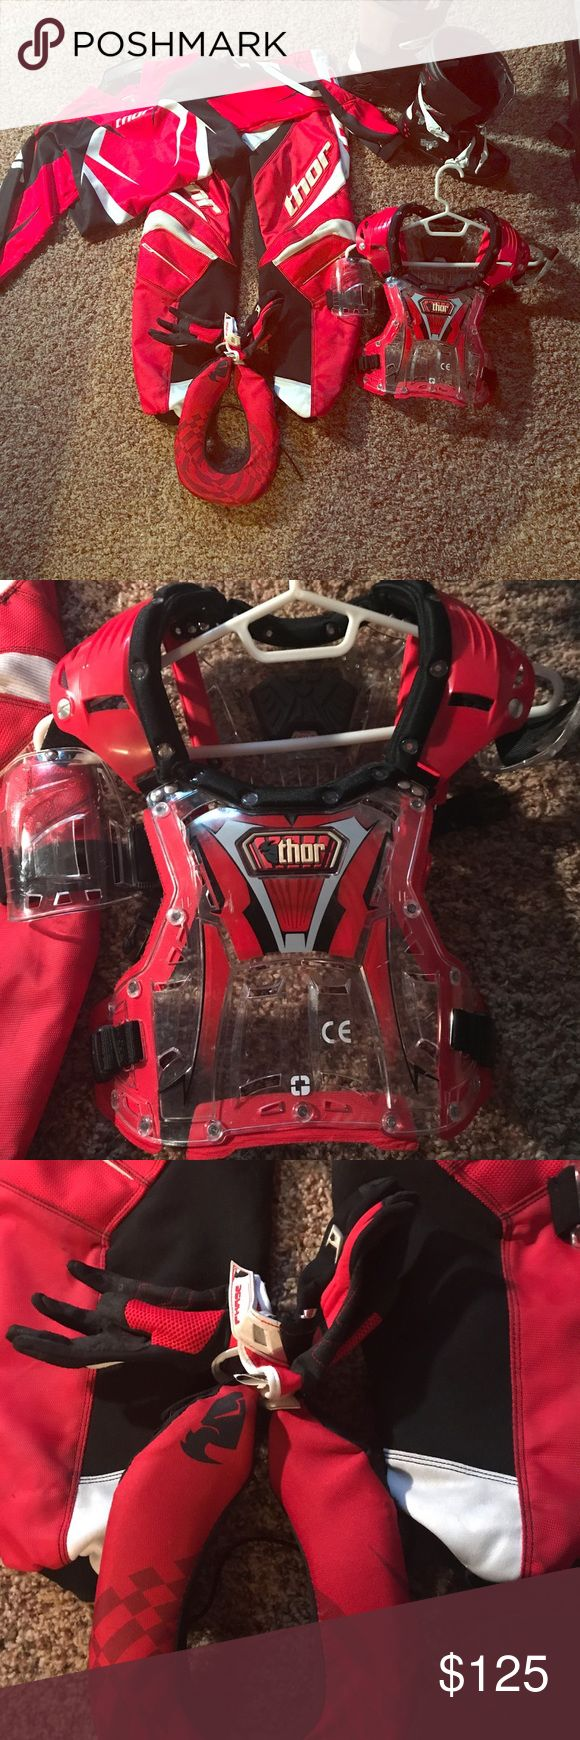 Thor Youth dirt bike racing gear Complete set of youth Thor dirt bike racing gear!!  Everything but helmet and I have the helmet as well if anyone is interested.  He wore this twice!!!!  Small stains on pants from dirt but still in VERY good condition. Other